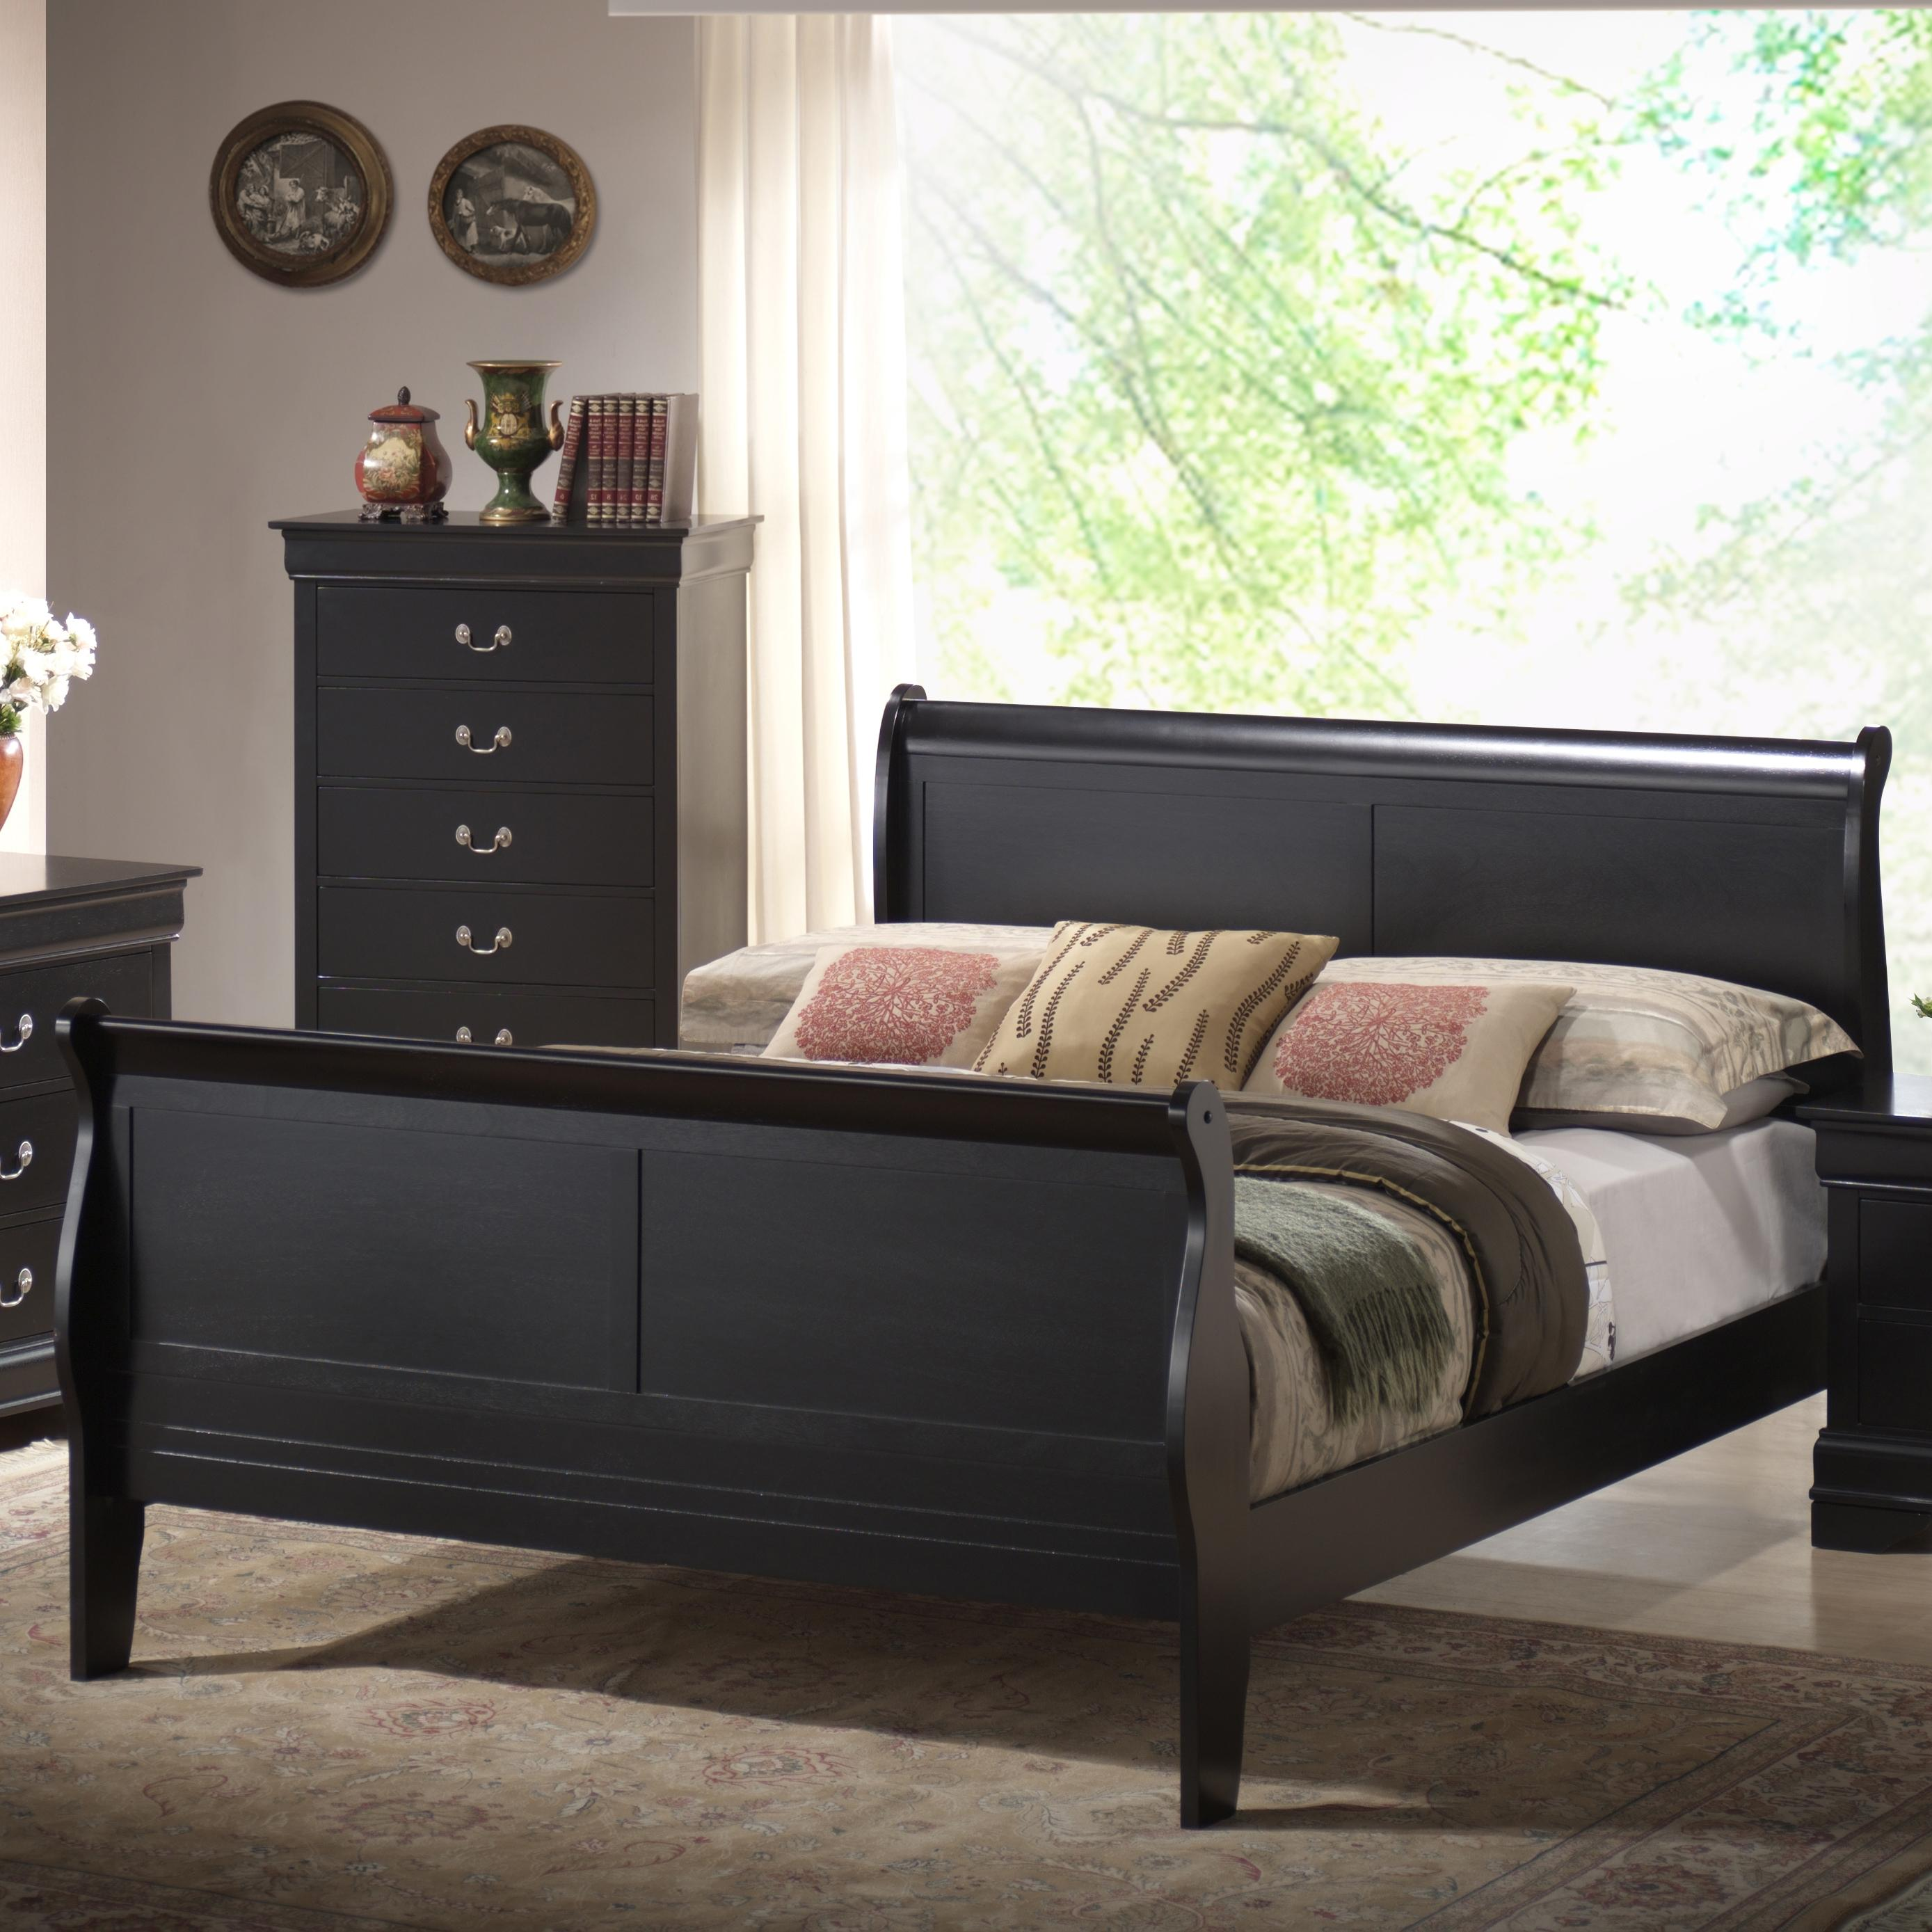 Lifestyle Louis Phillipe Full Sleigh Panel Bed - Item Number: C5934A-FSA-XXBL+FXP-XXBL